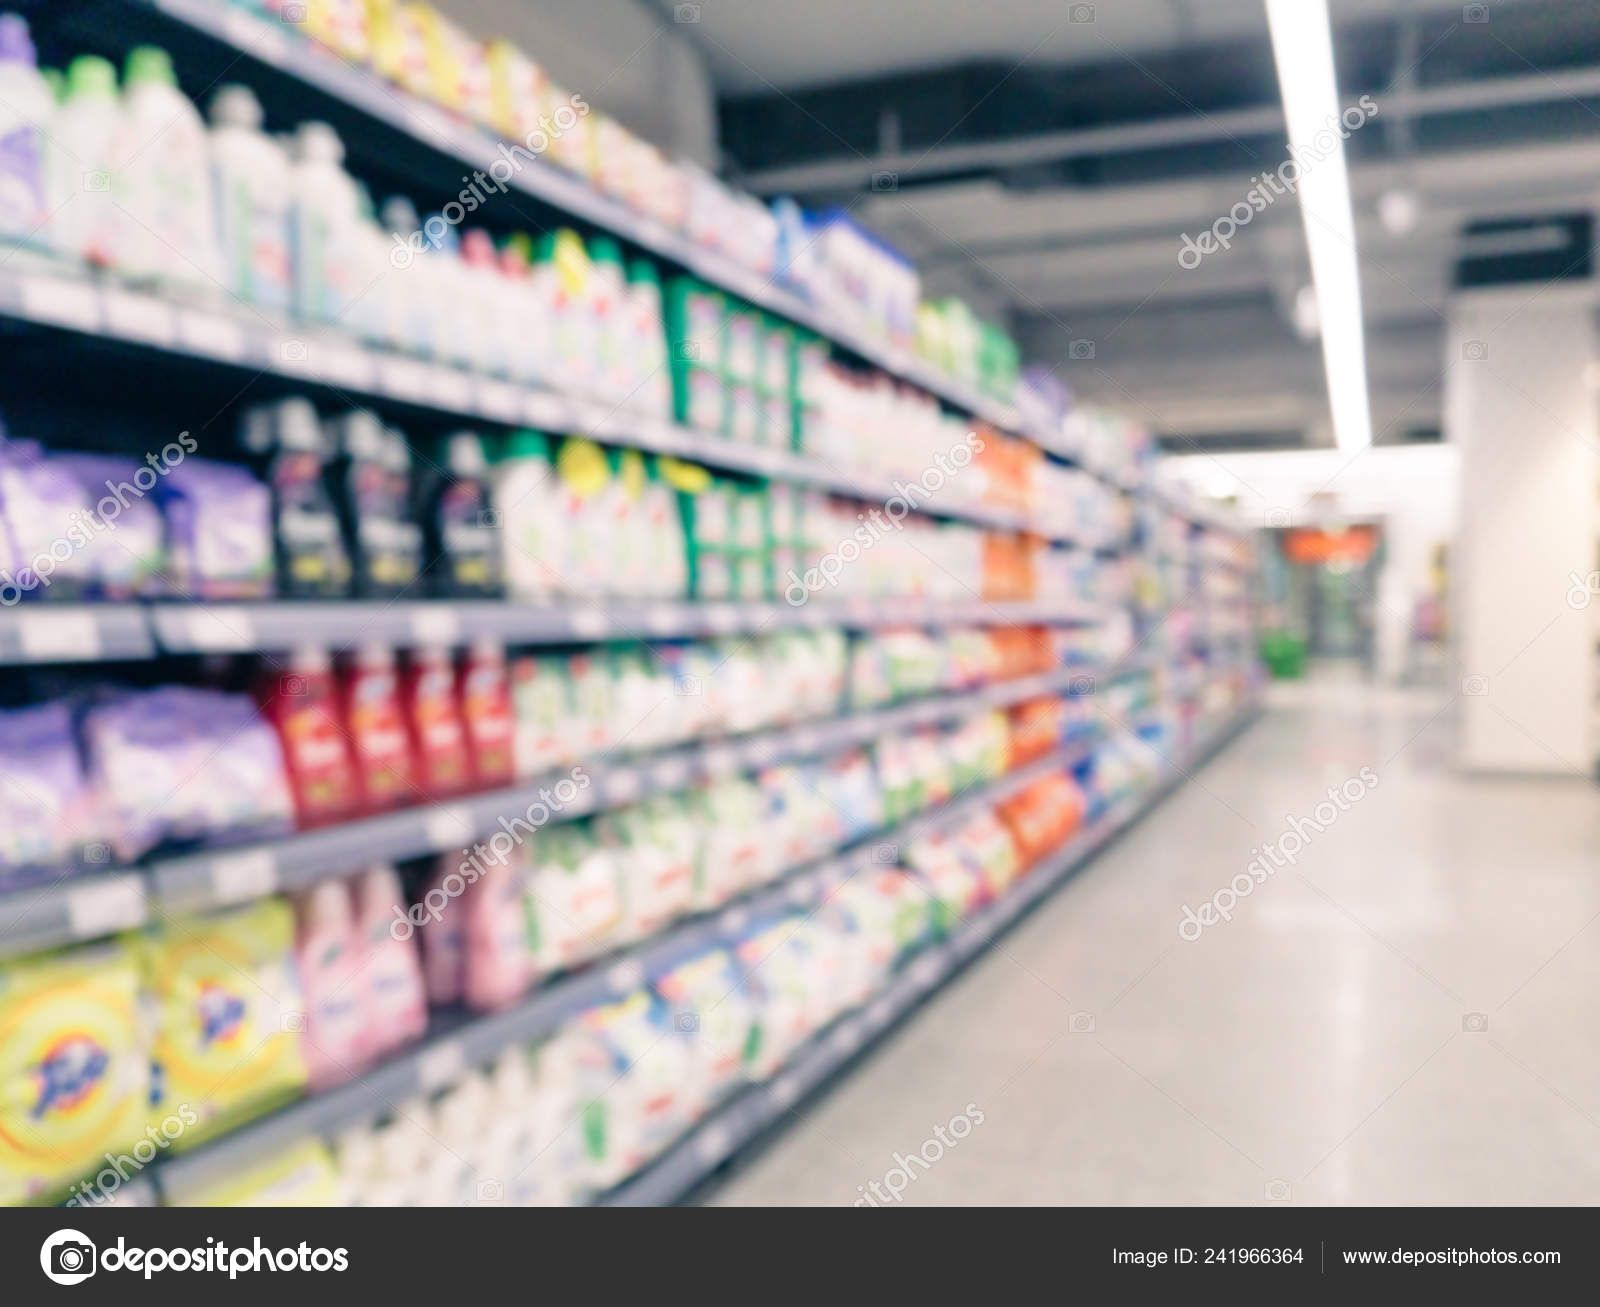 Blurred Colorful Supermarket Products Shelves Background